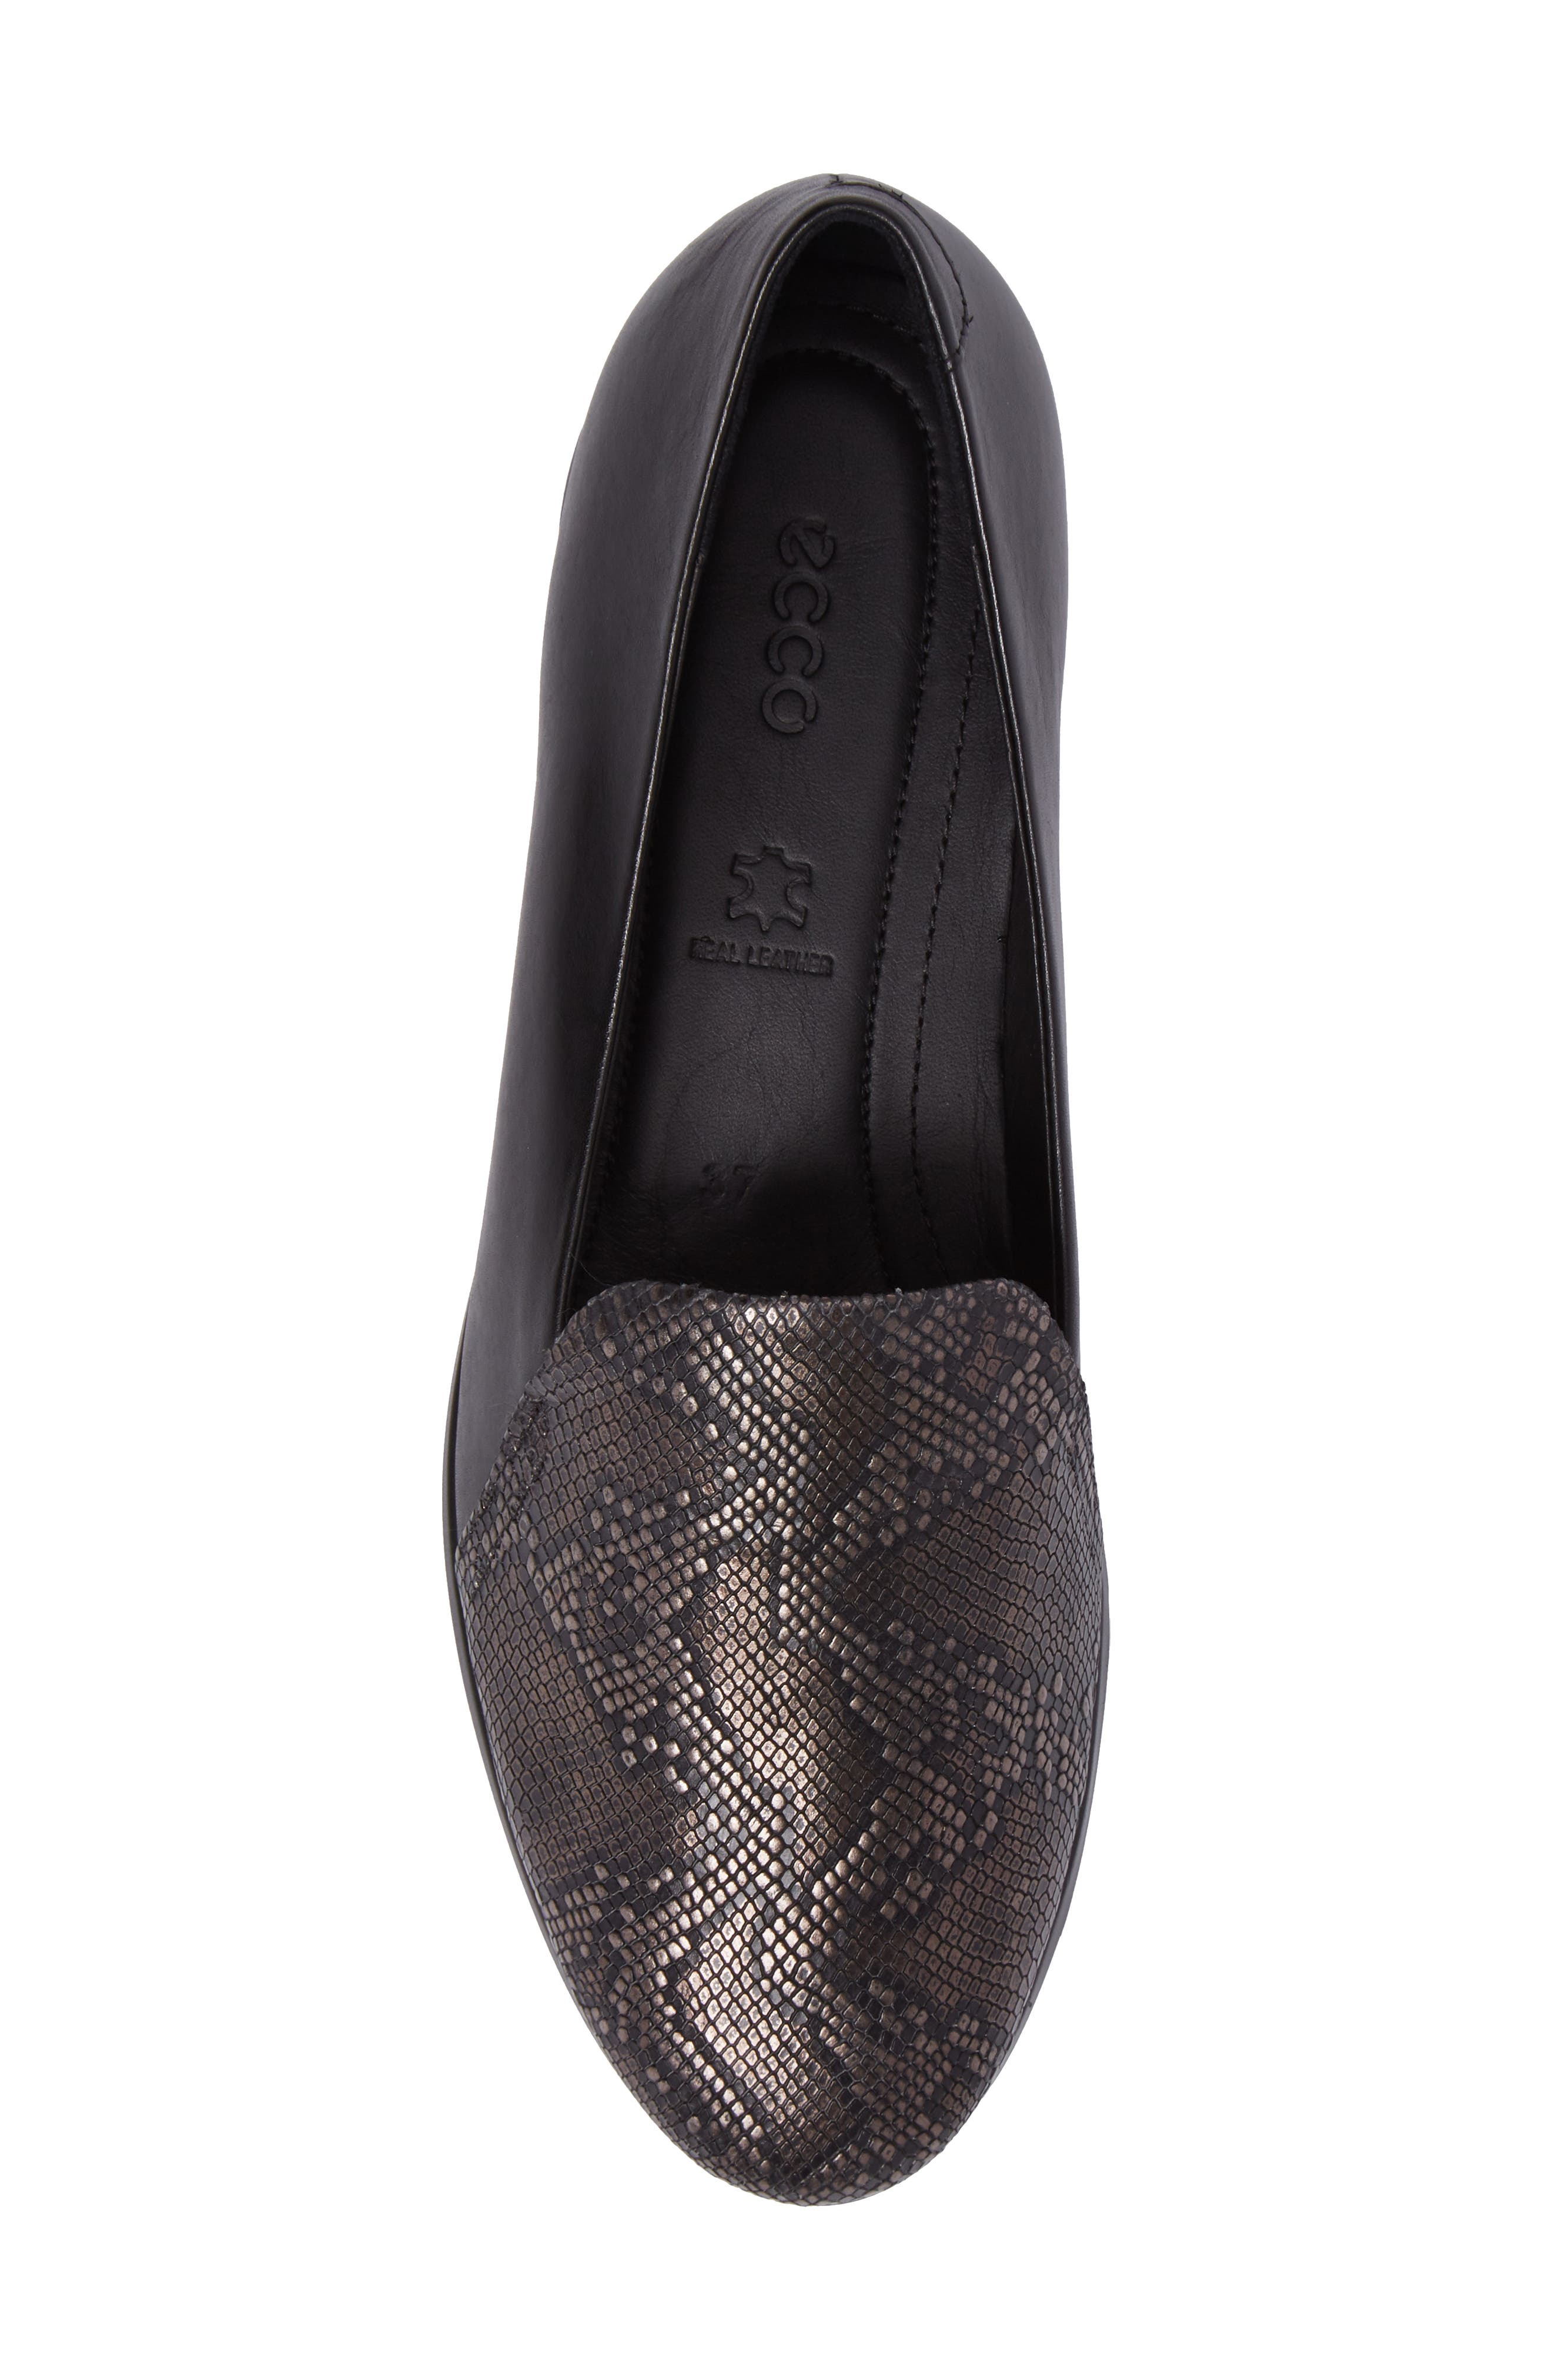 Touch 2.0 Scale Embossed Loafer Flat,                             Alternate thumbnail 5, color,                             DARK SHADOW LEATHER